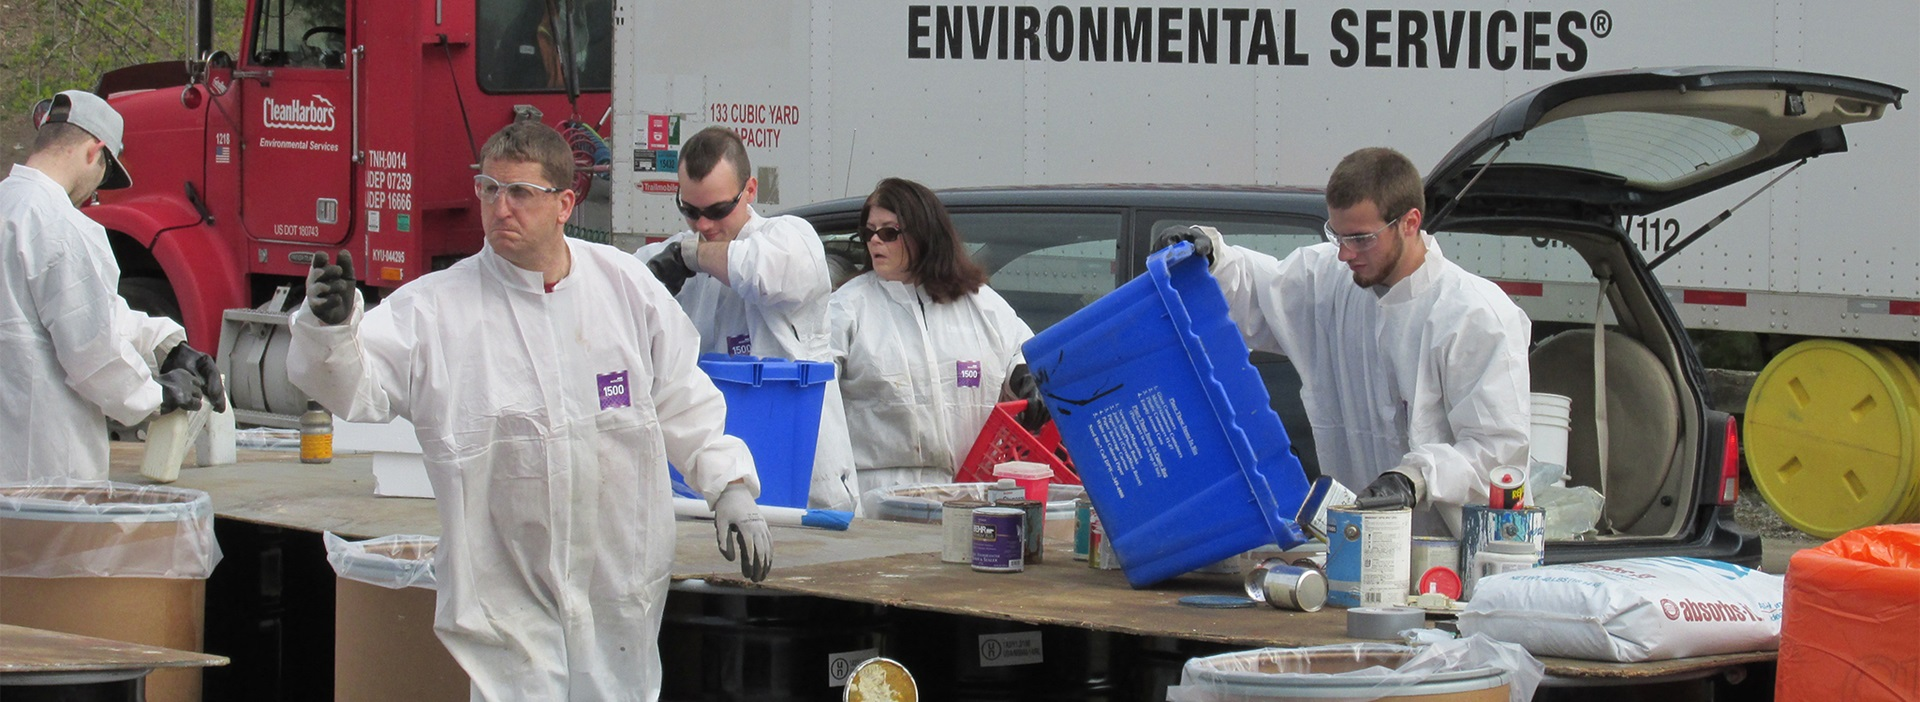 Hazardous waste being collected